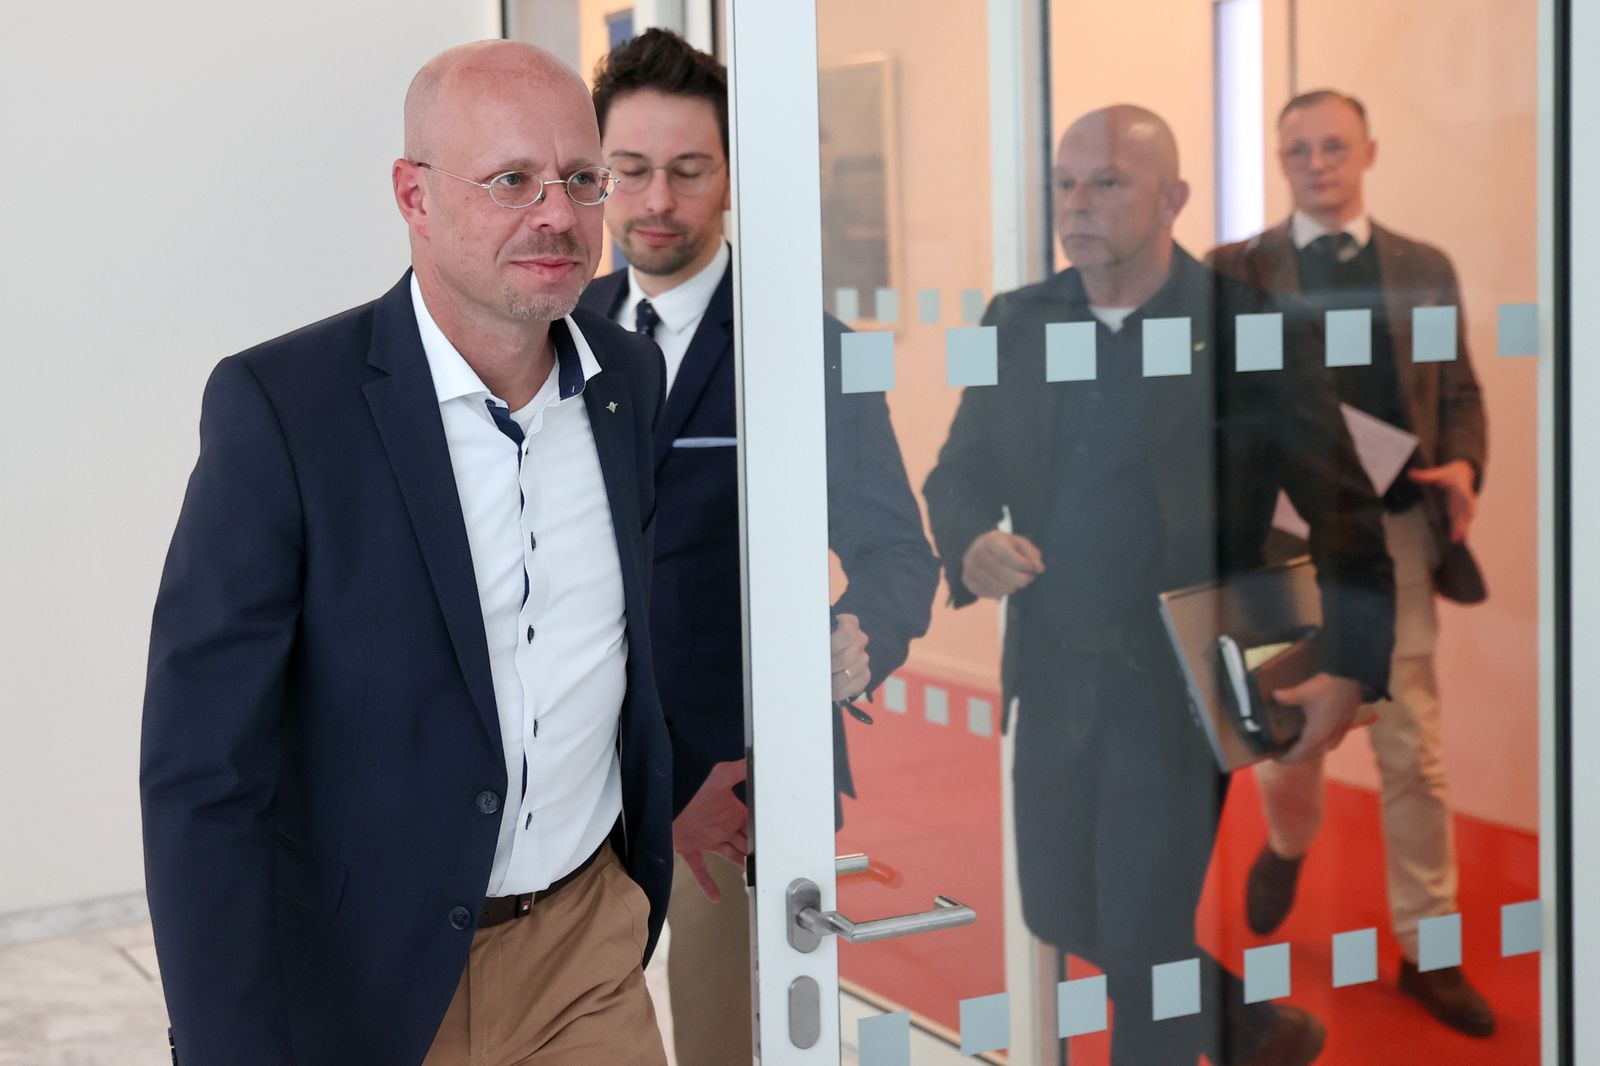 Kalbitz arrives for a meeting of the Brandenburg AfD state parliament faction in Potsdam